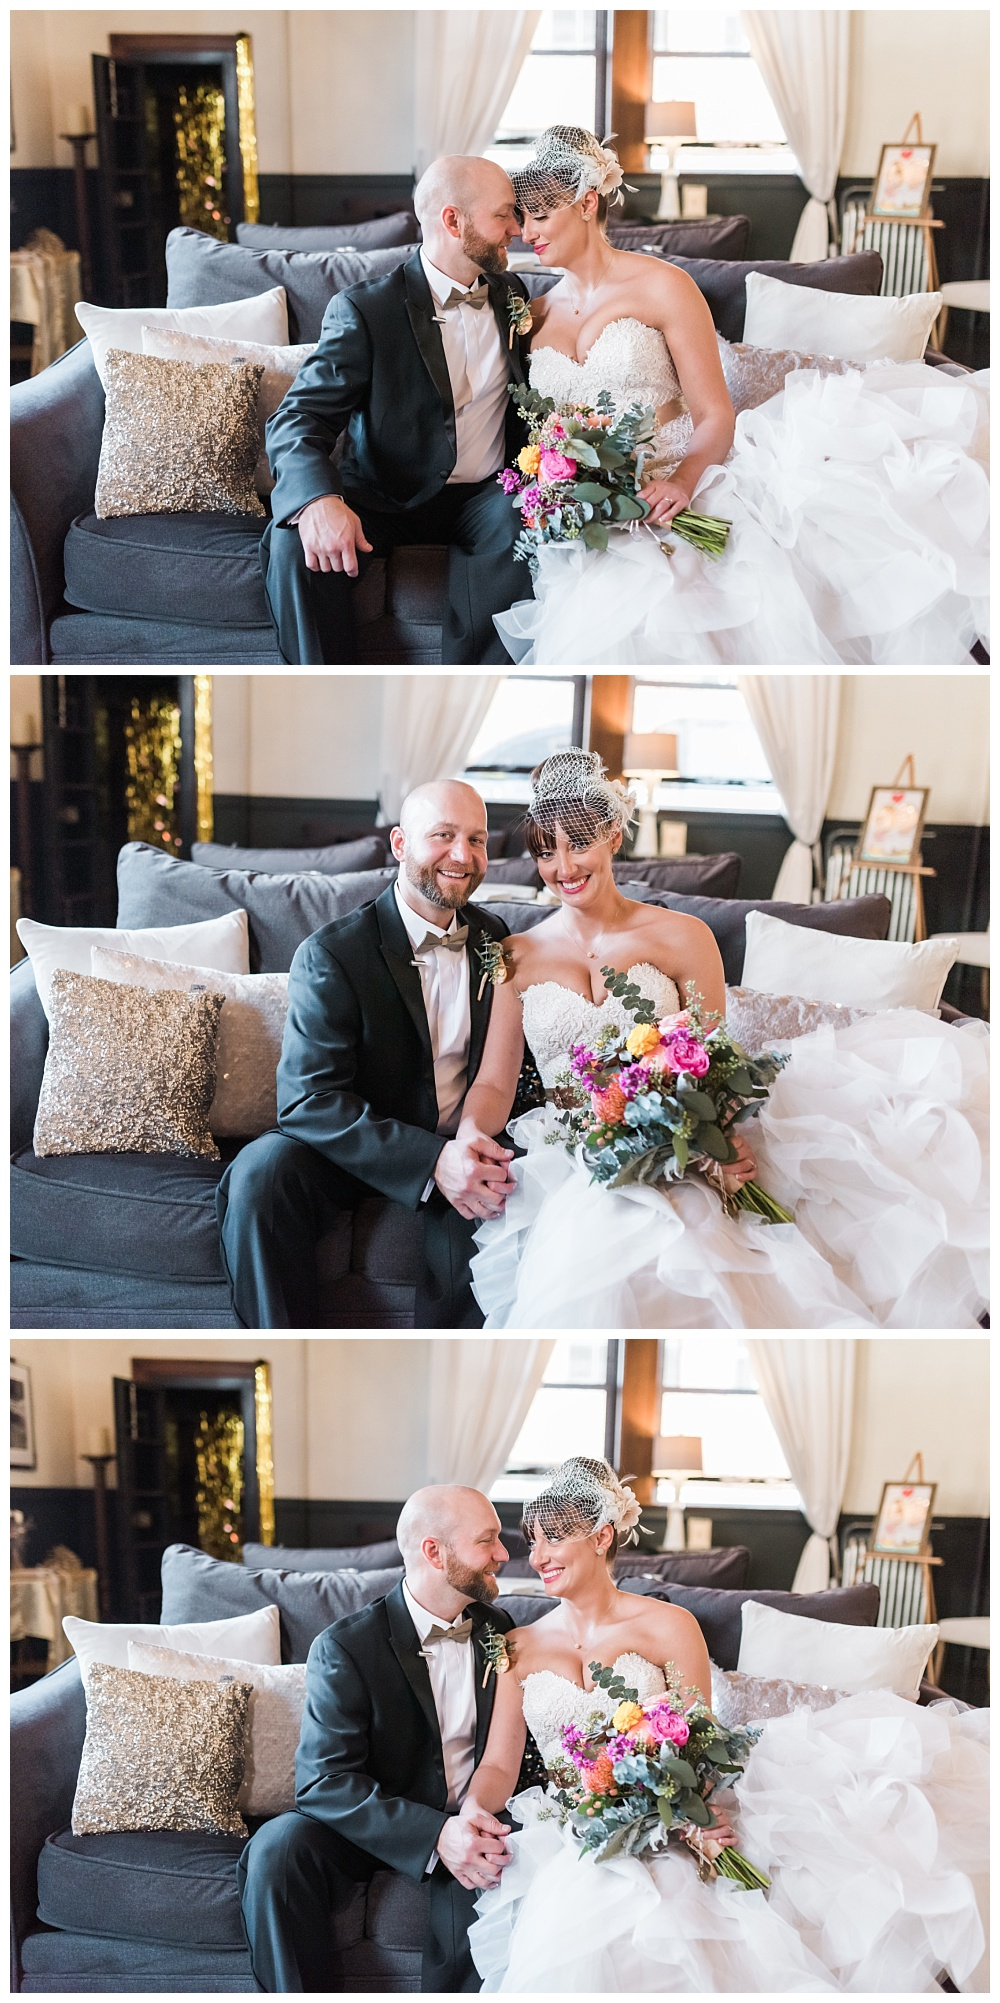 Stephanie Marie Photography The Silver Fox Historic Wedding Venue Streator Chicago Illinois Iowa City Photographer_0027.jpg